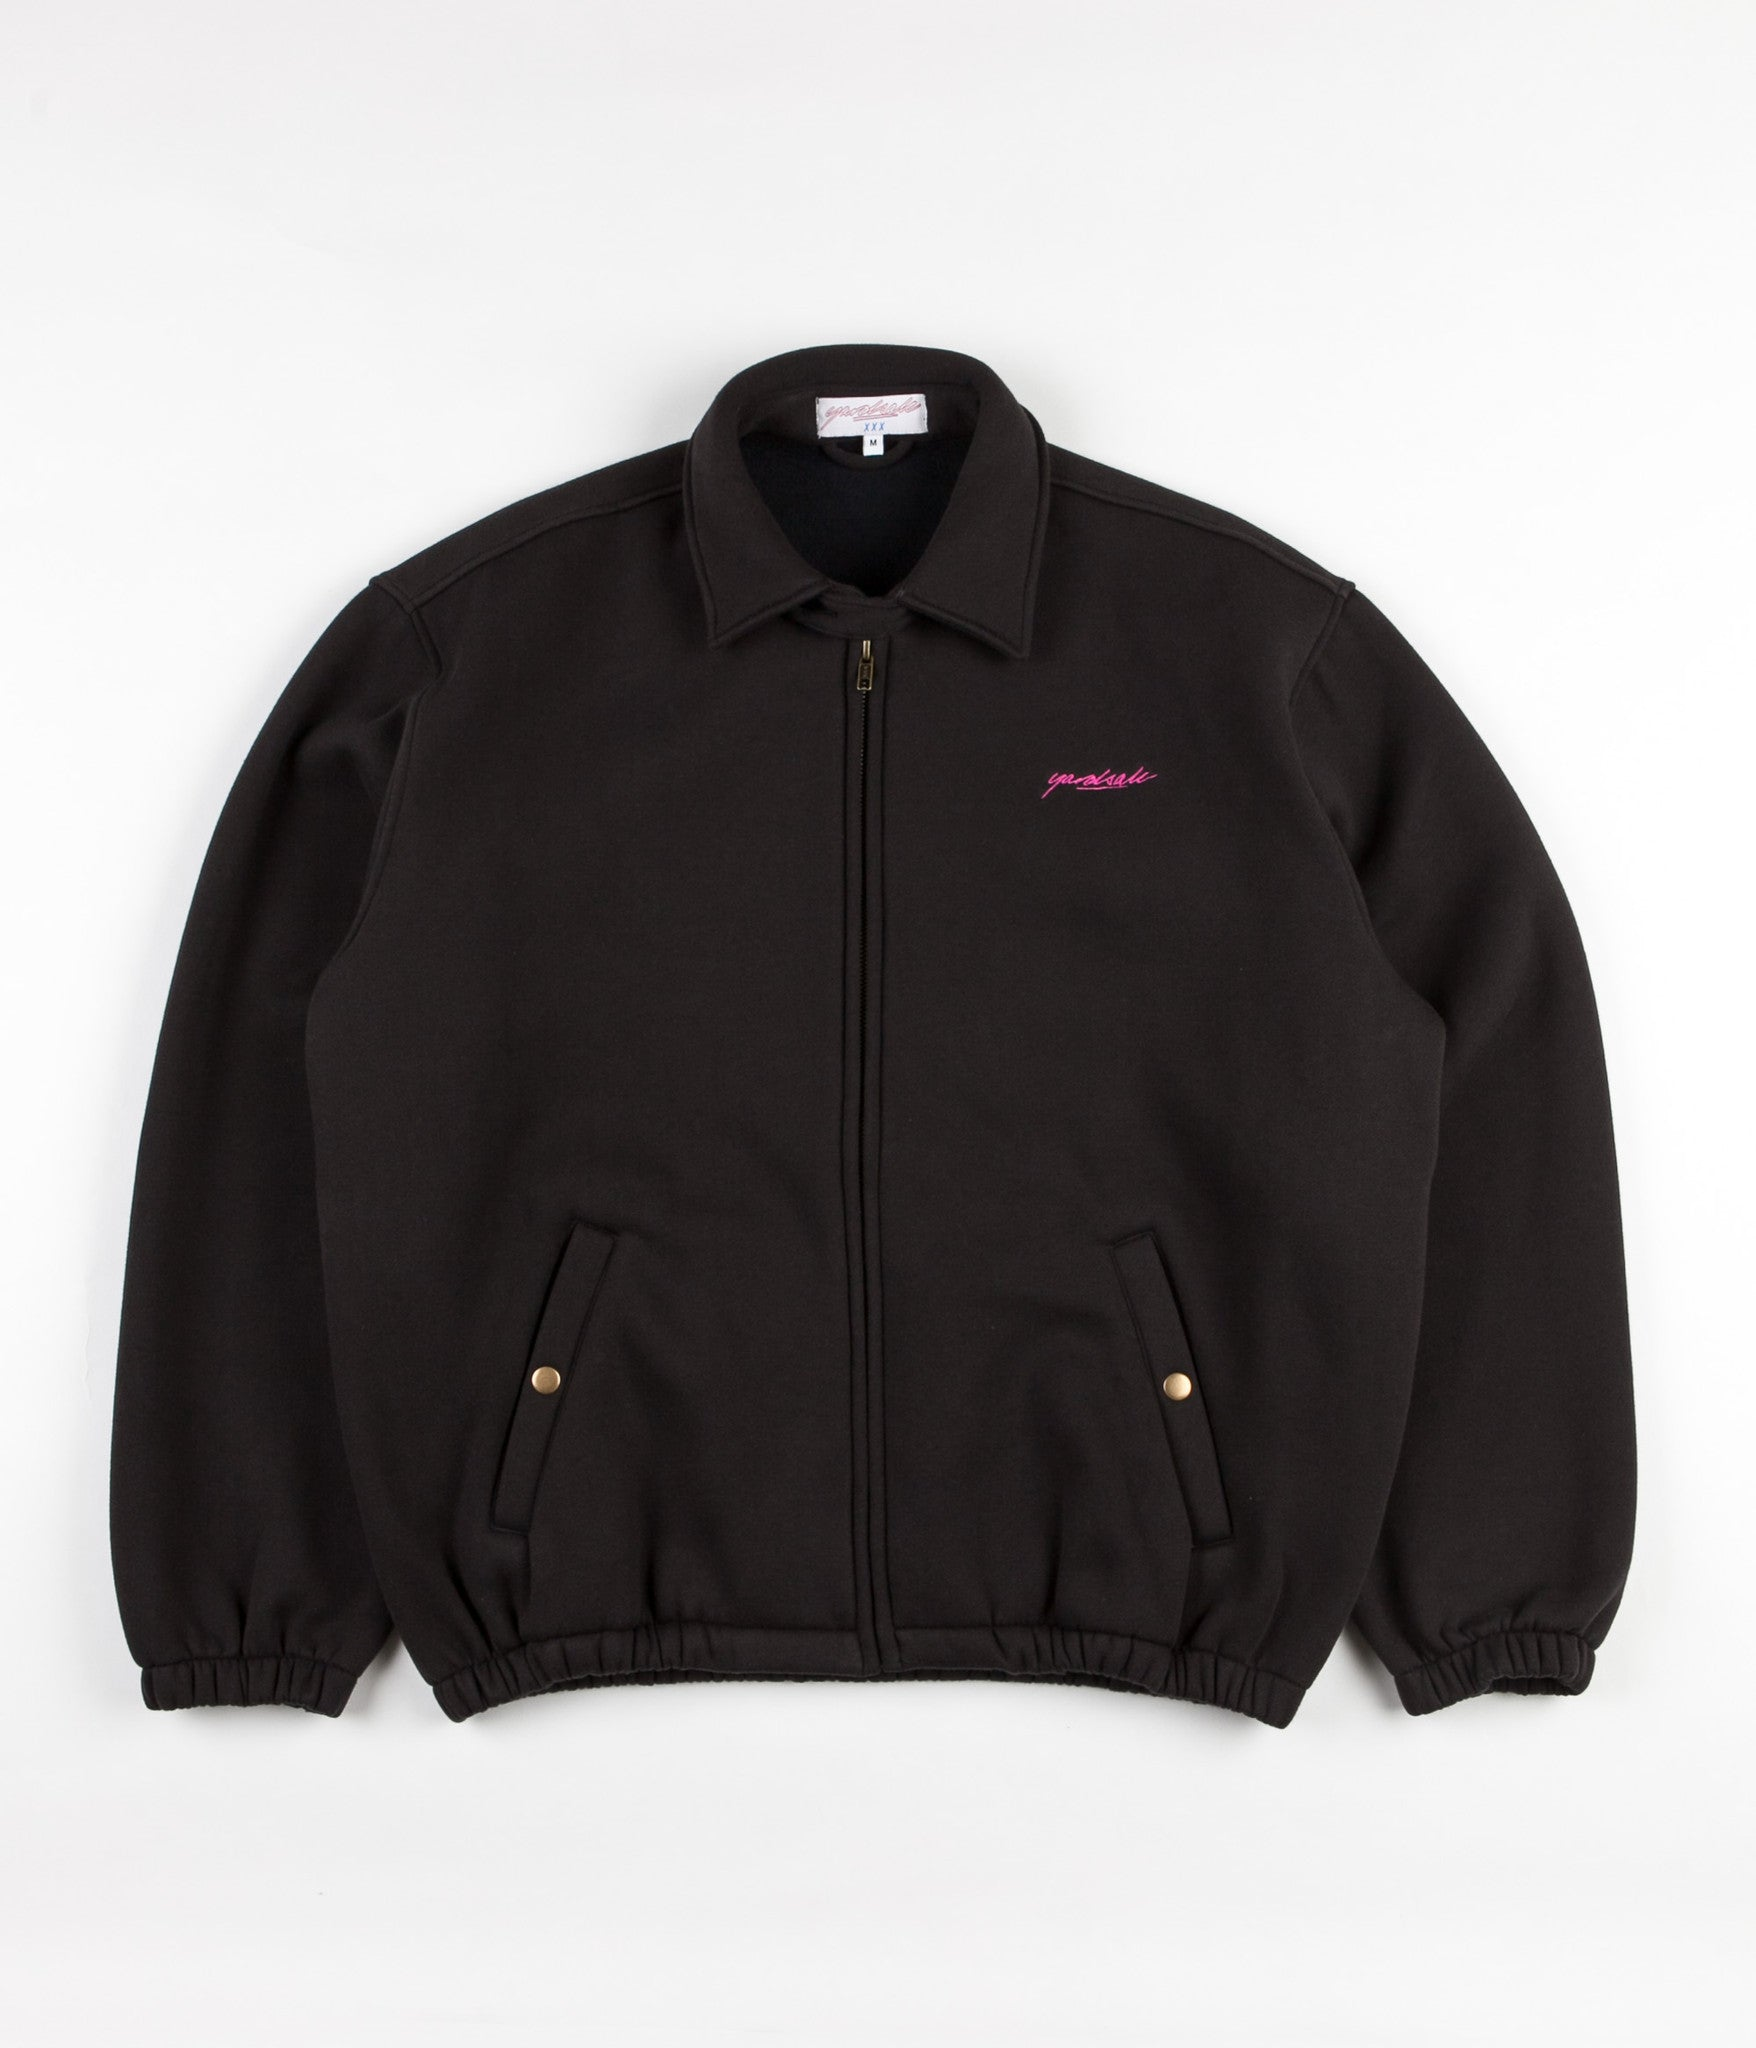 Yardsale Cruise Jacket - Black